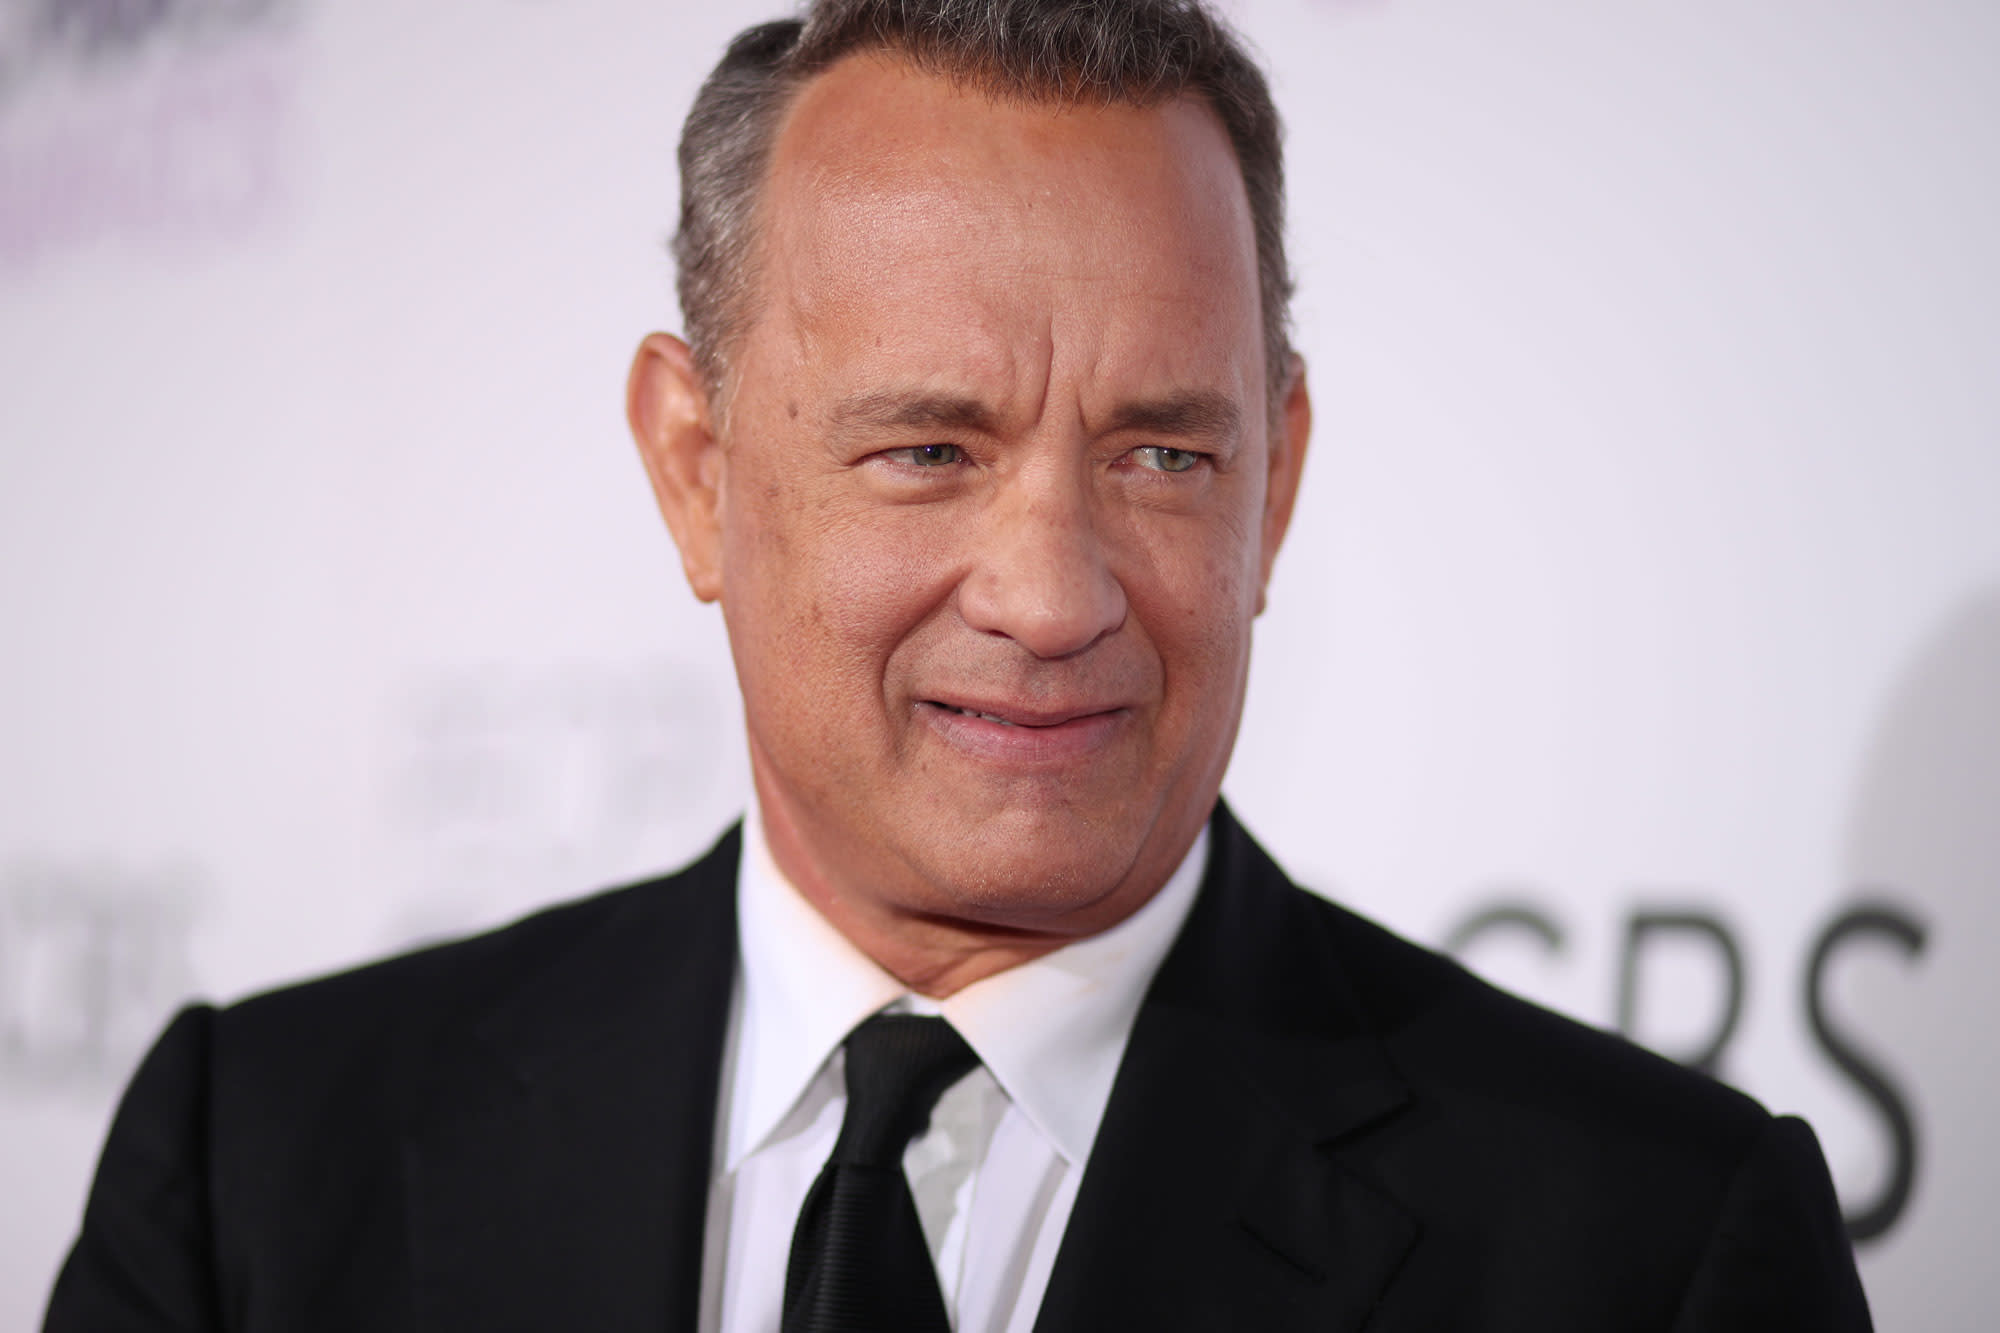 Tom Hanks worked as an unpaid intern and slept on a friend's couch in NYC before he got famous